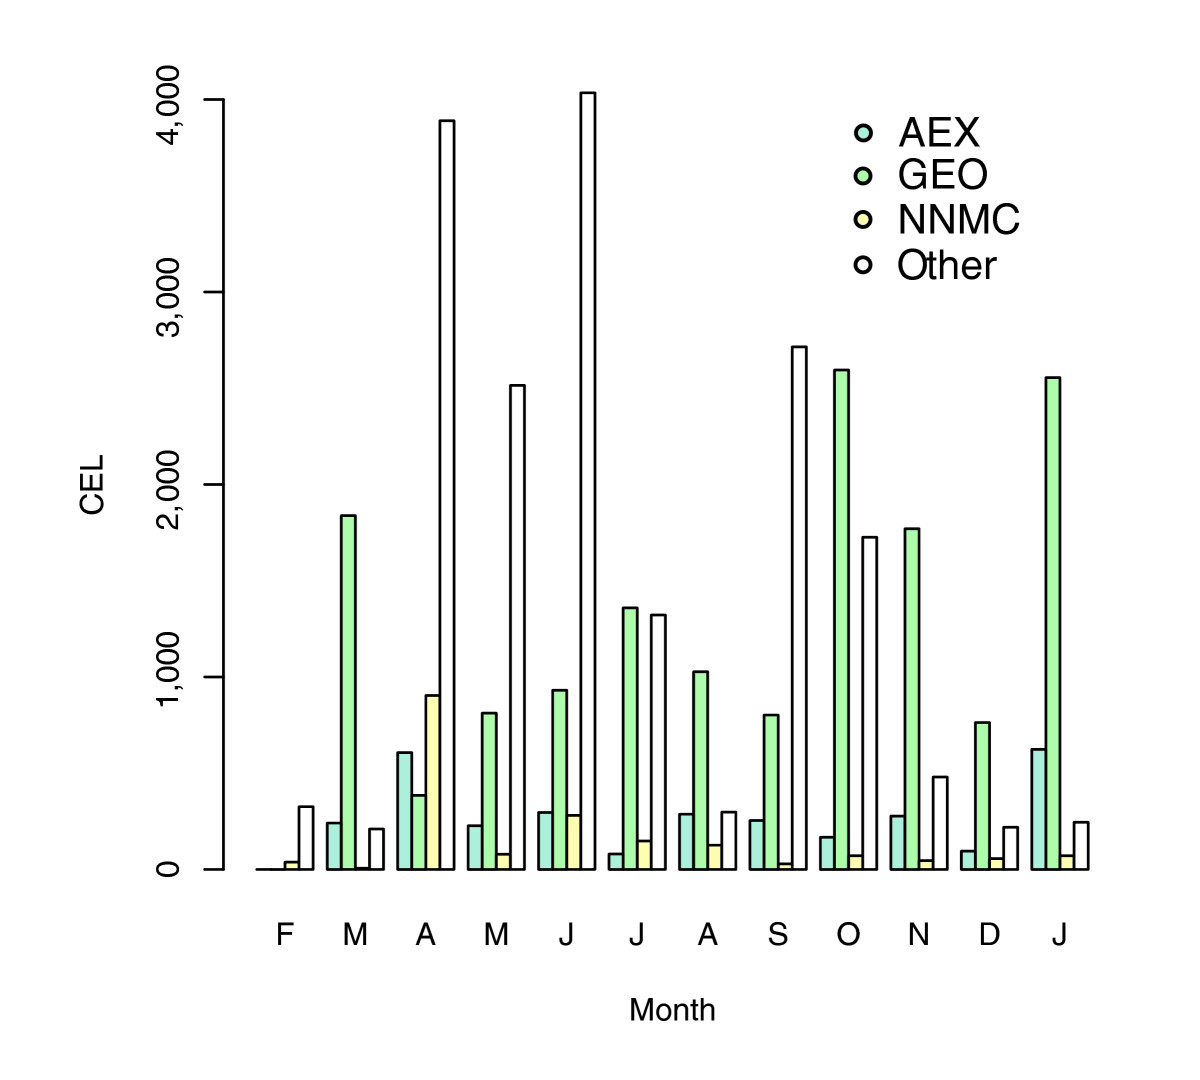 https://static-content.springer.com/image/art%3A10.1186%2Fgb-2007-8-6-r112/MediaObjects/13059_2007_Article_1593_Fig3_HTML.jpg